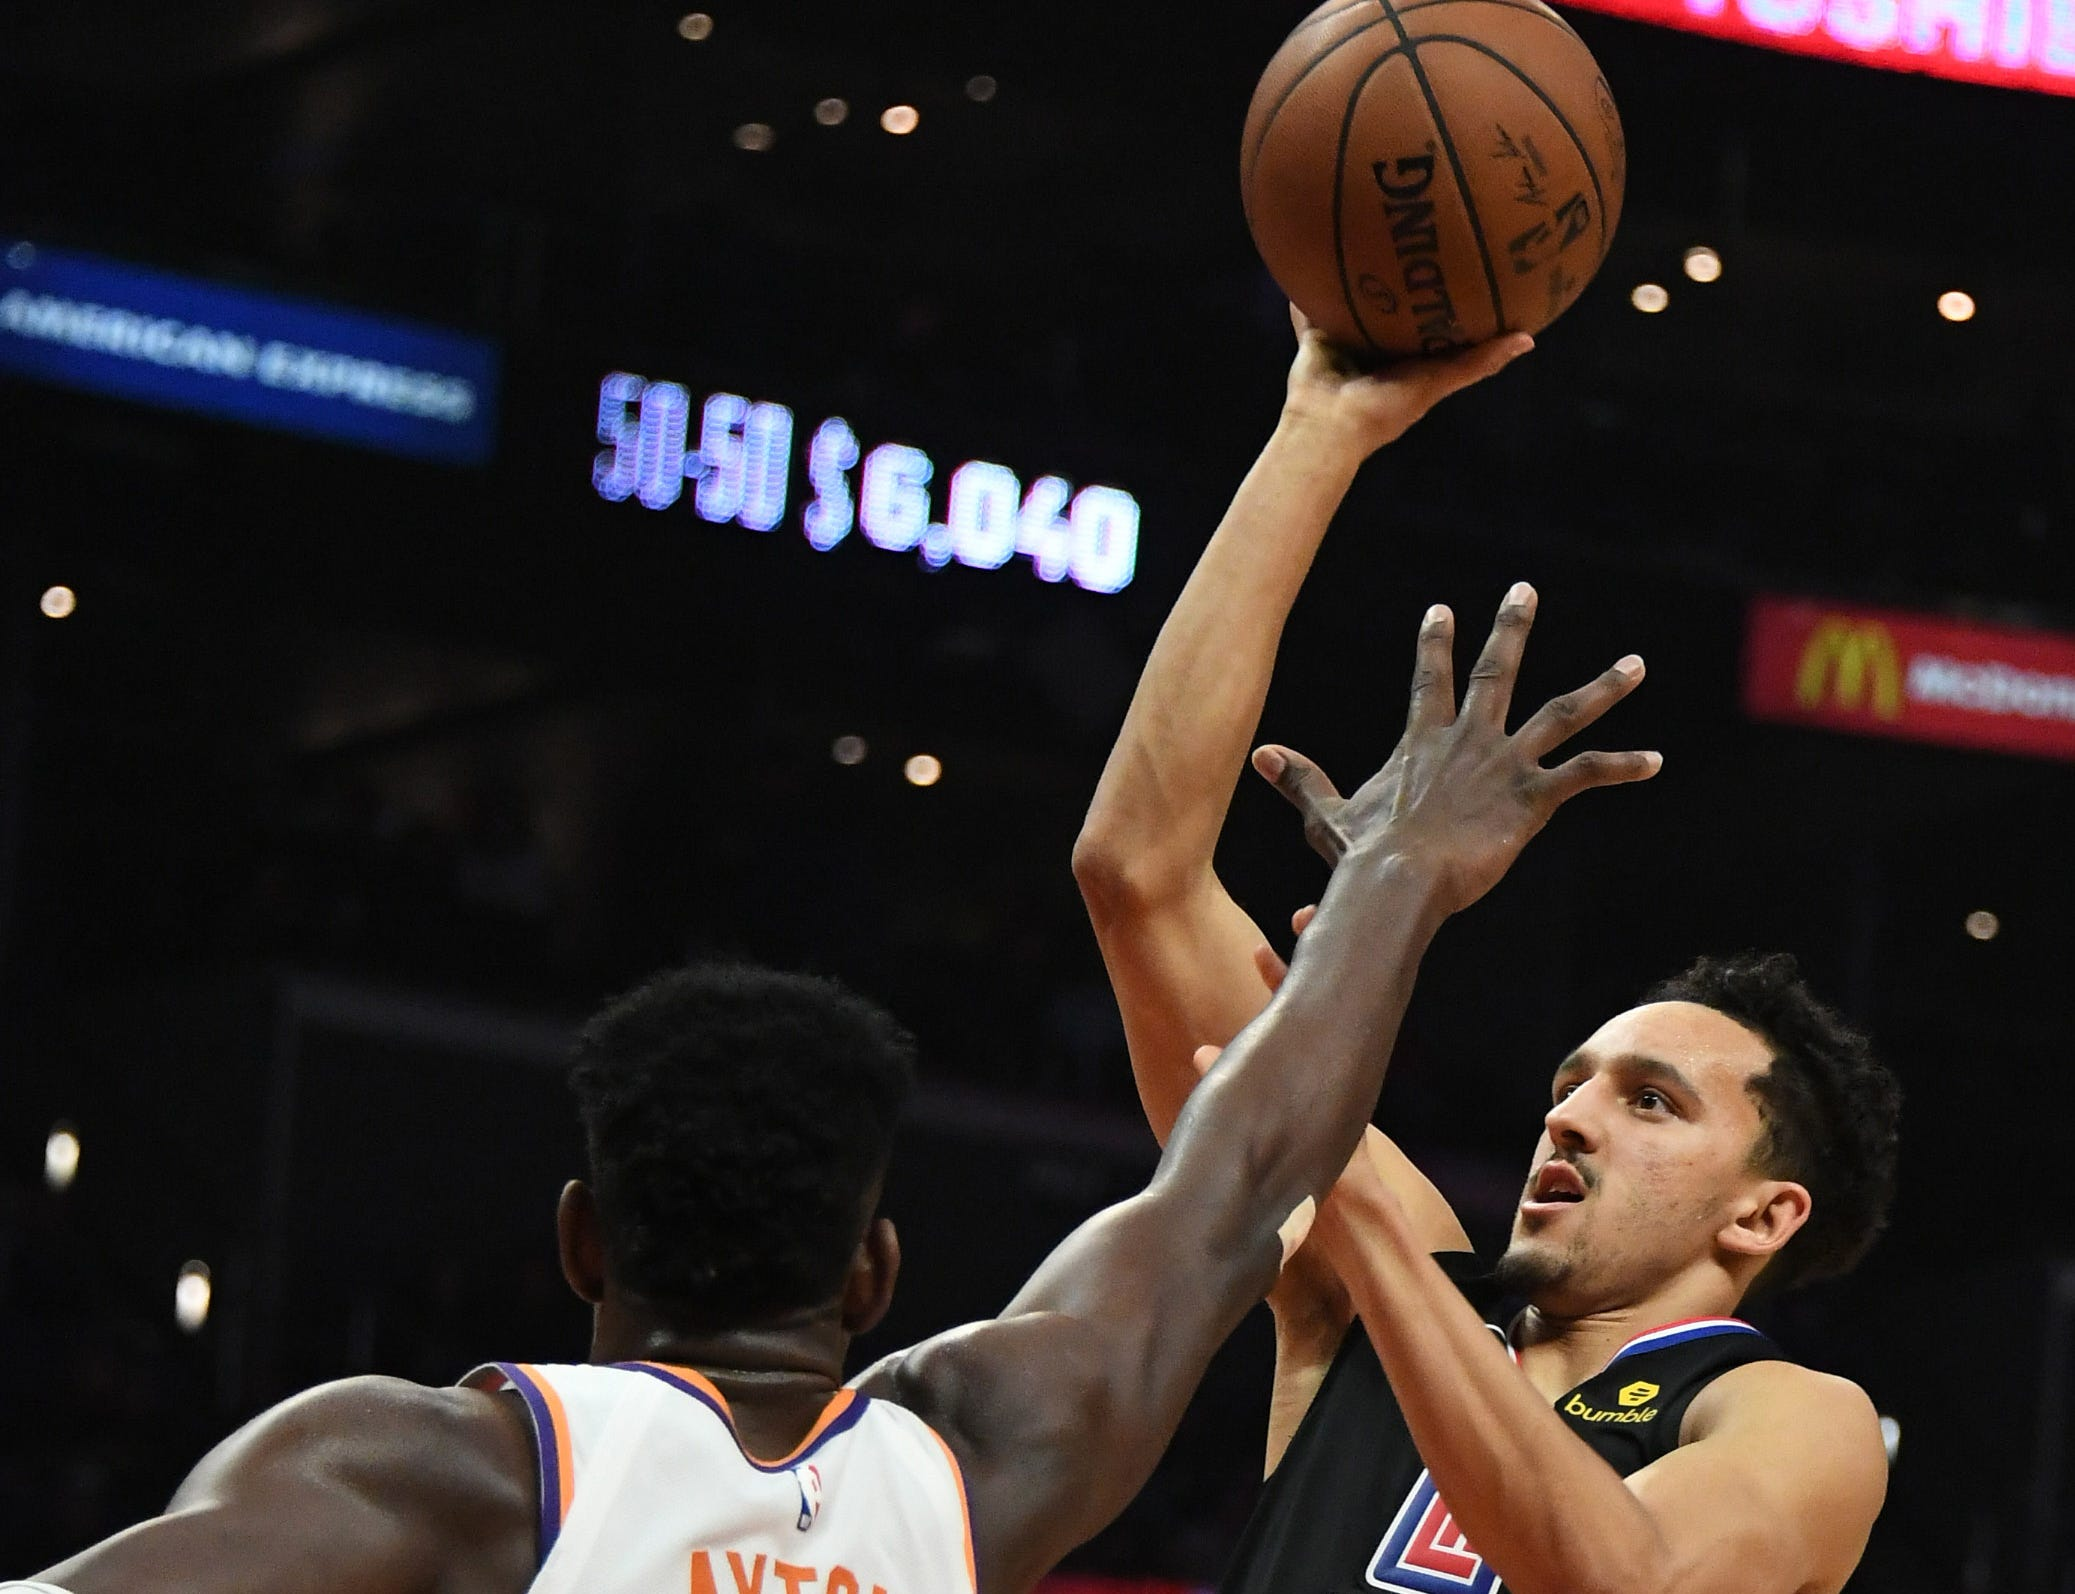 Feb 13, 2019; Los Angeles, CA, USA; LA Clippers guard Landry Shamet (20) shoots over Phoenix Suns center Deandre Ayton (22) in the second half at Staples Center. Mandatory Credit: Richard Mackson-USA TODAY Sports